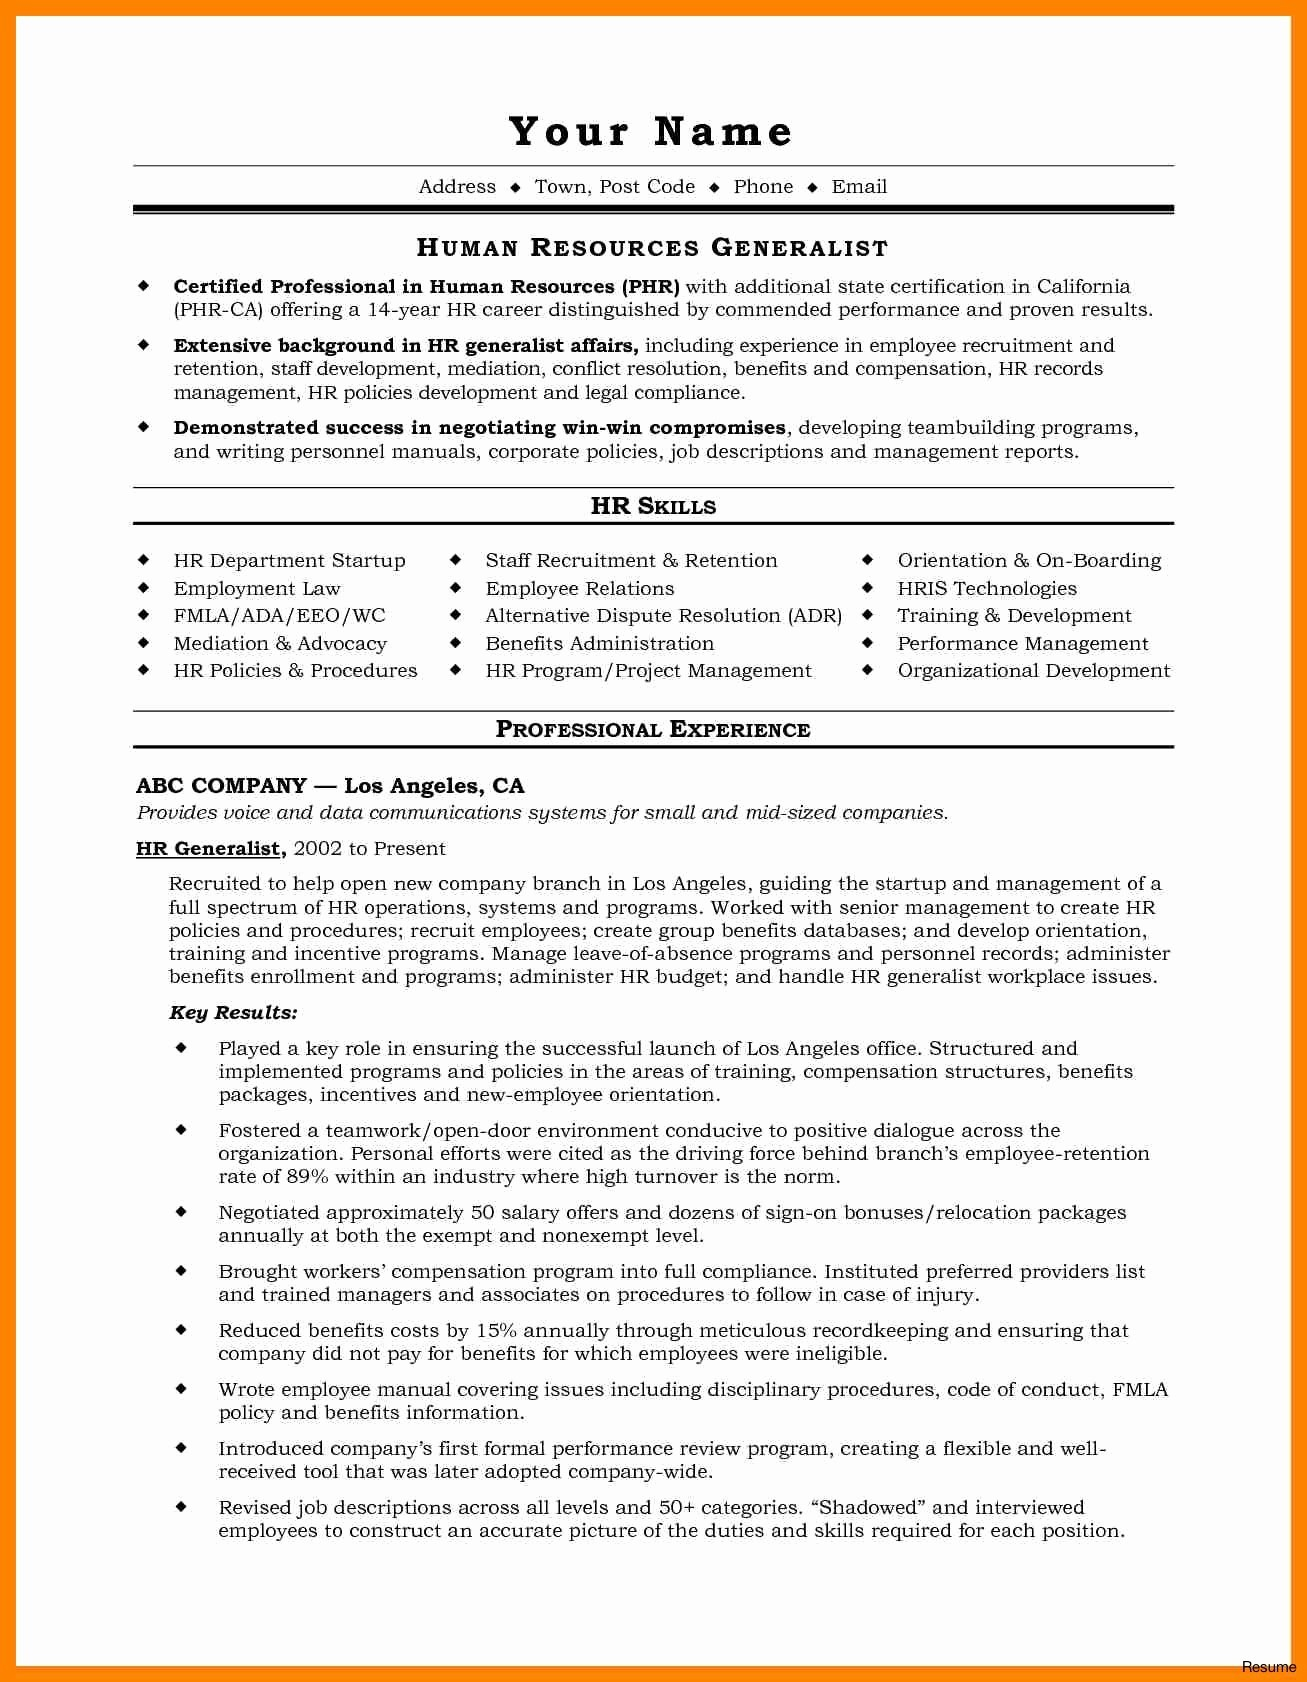 Property Manager Resume Objective - Property Manager Resume Objective Awesome Bsw Resume 0d Property